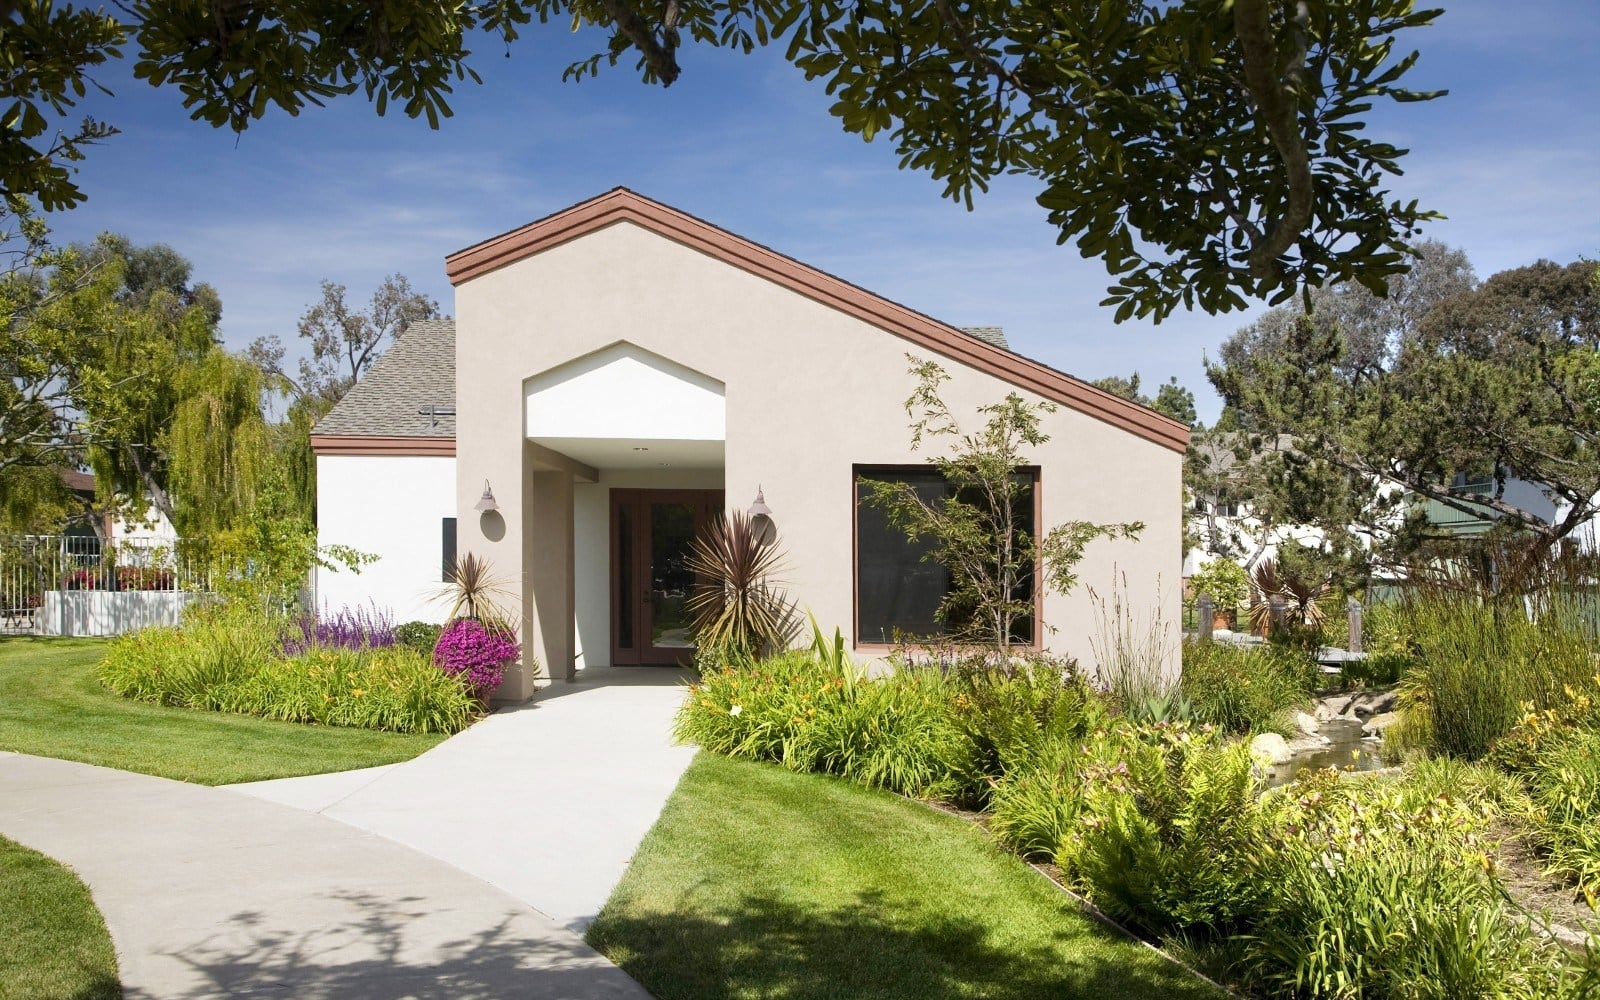 Landscaping and exterior of apartments in Goleta